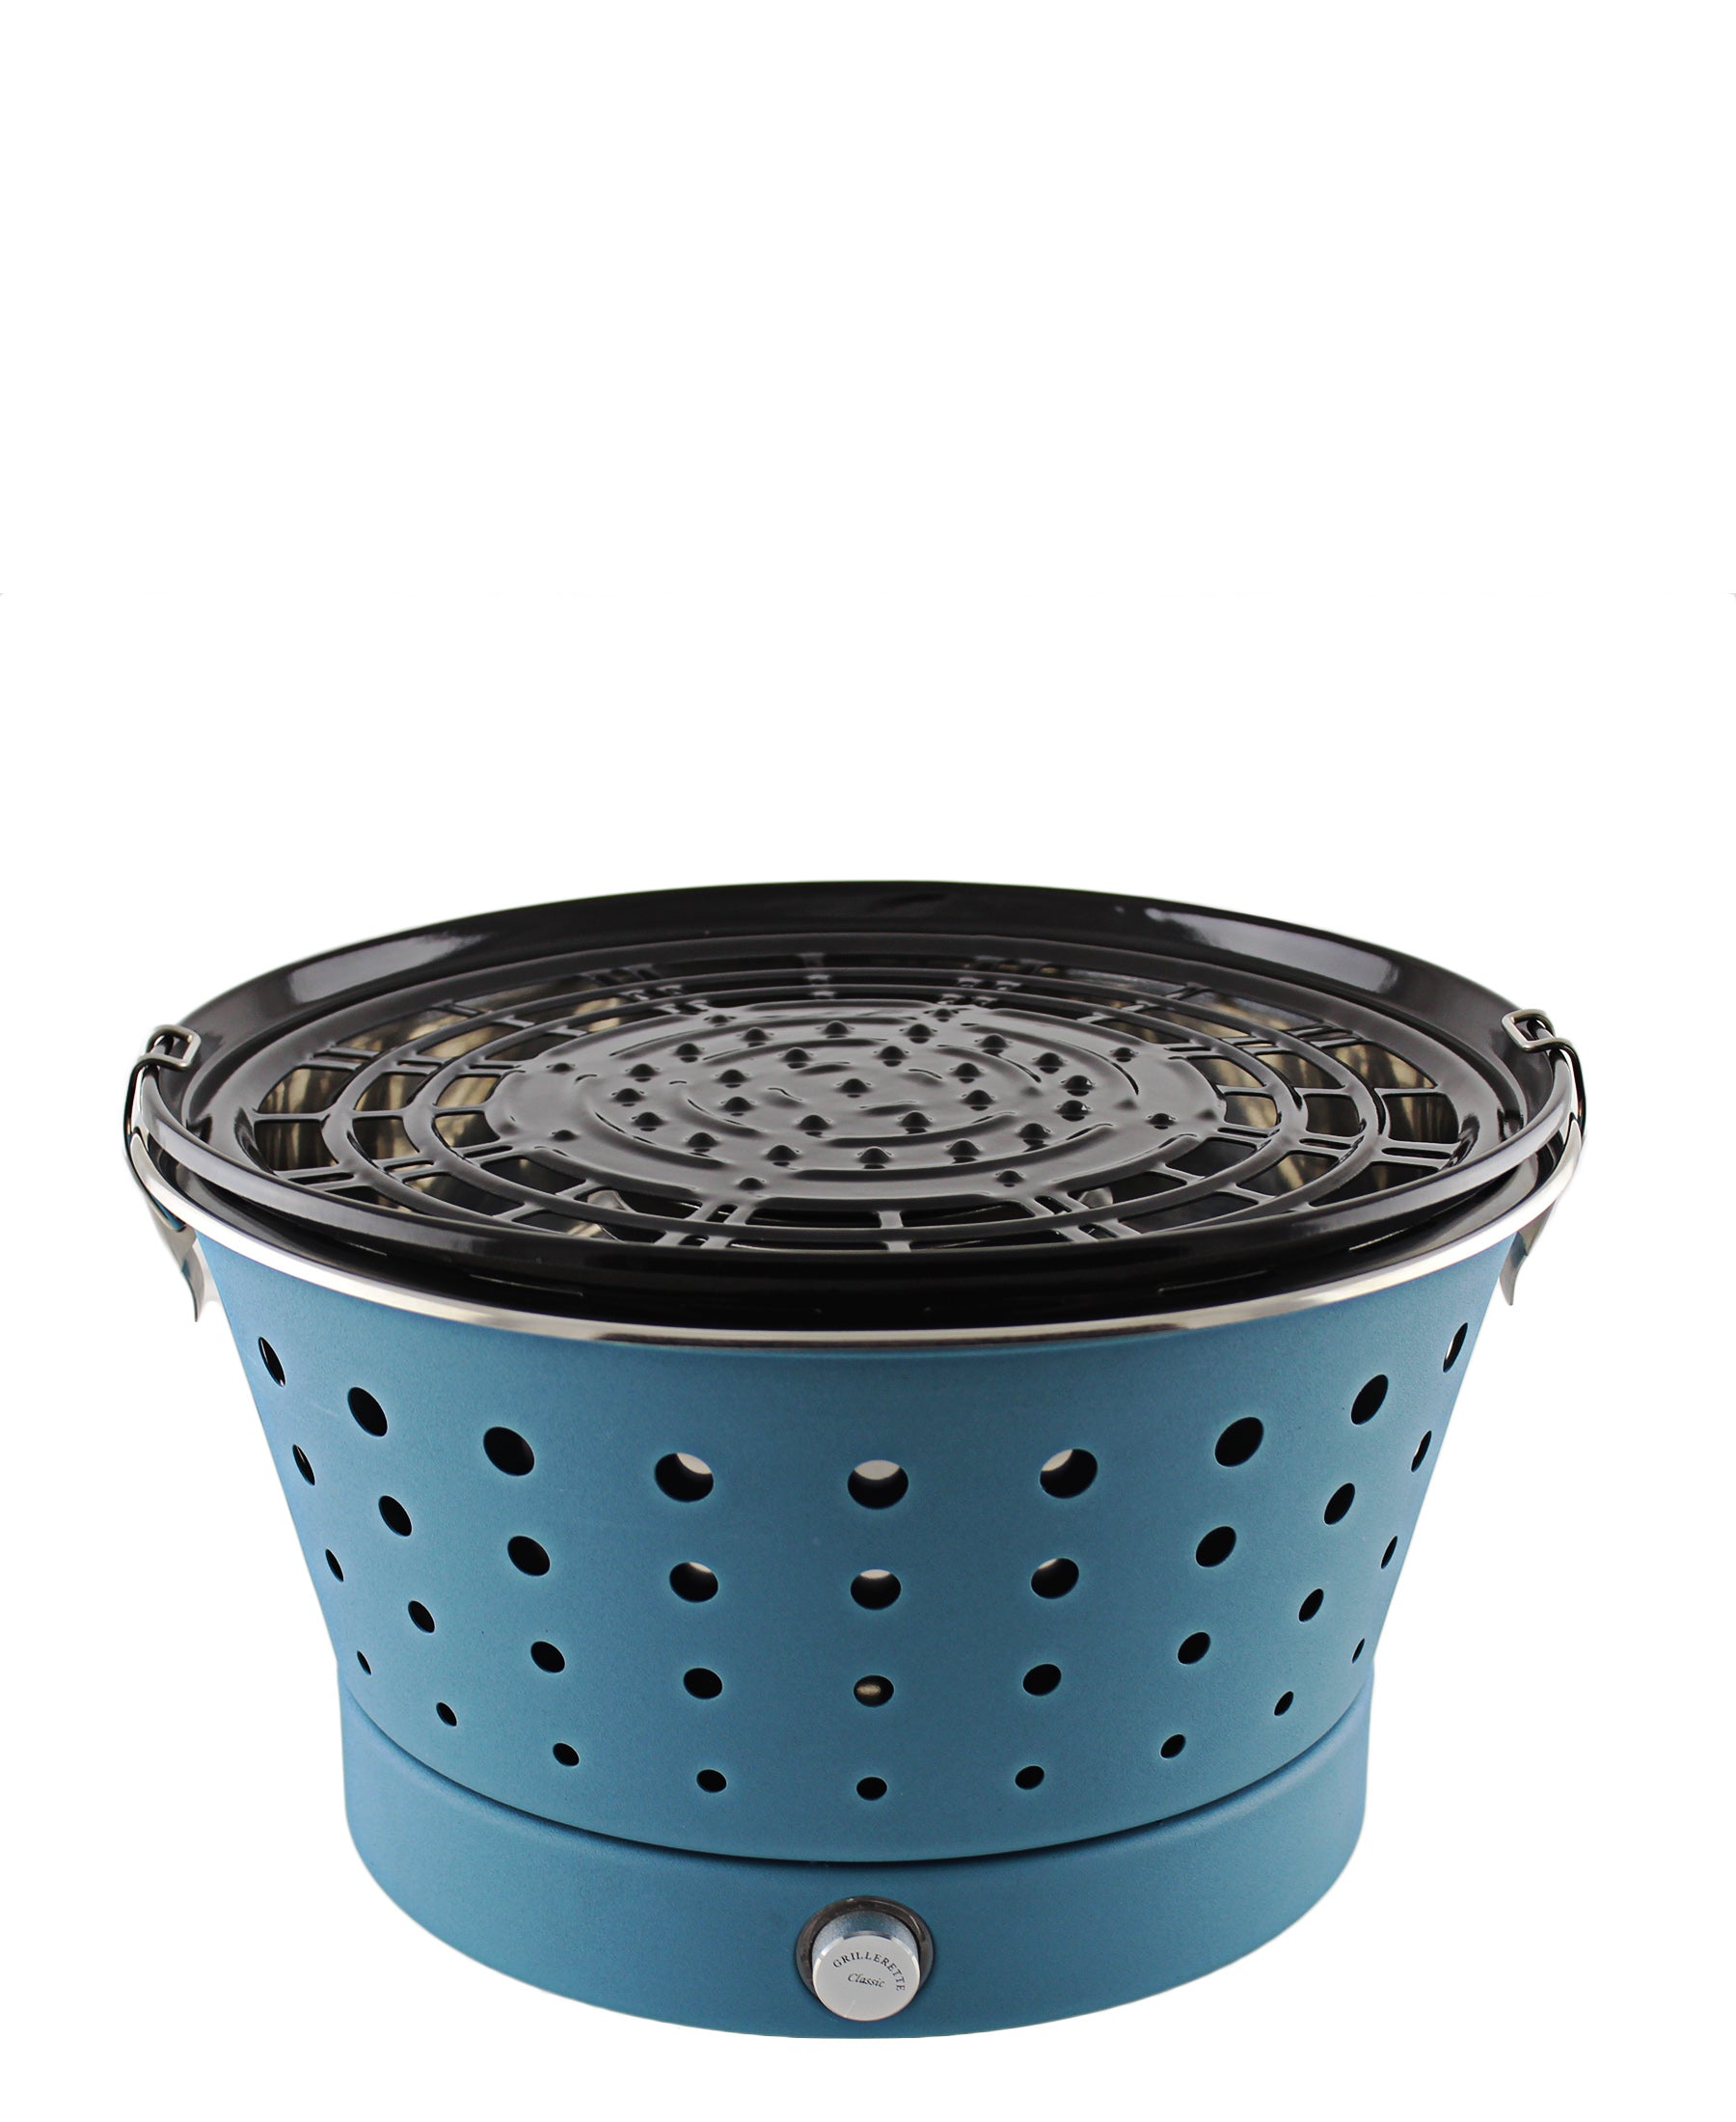 Smokeless Grill - Blue